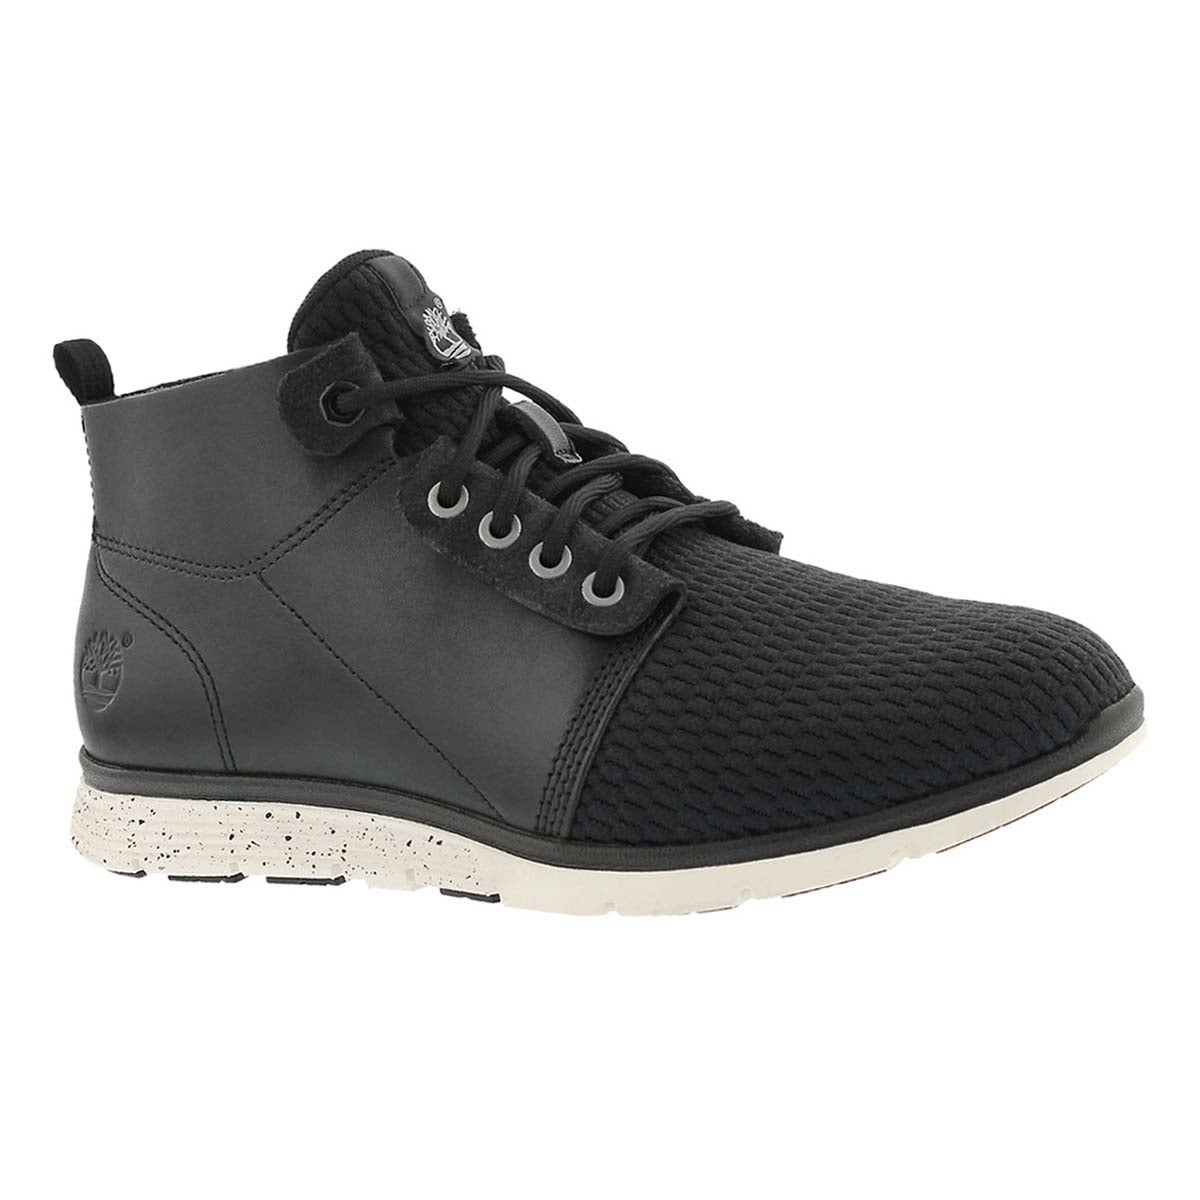 Women's KILLINGTON black chukka boots